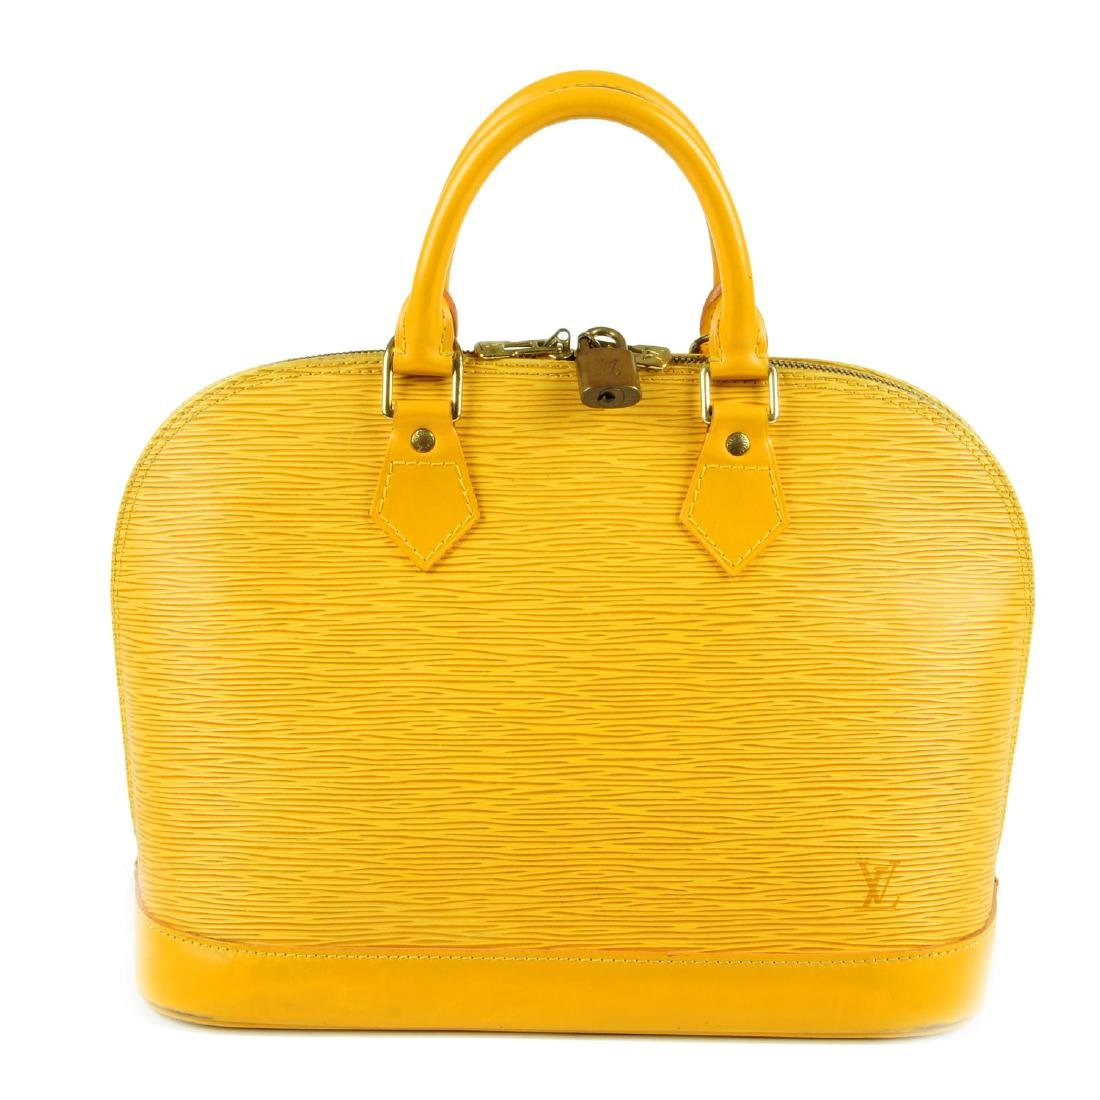 LOUIS VUITTON - an Epi Alma PM handbag. Designed with a